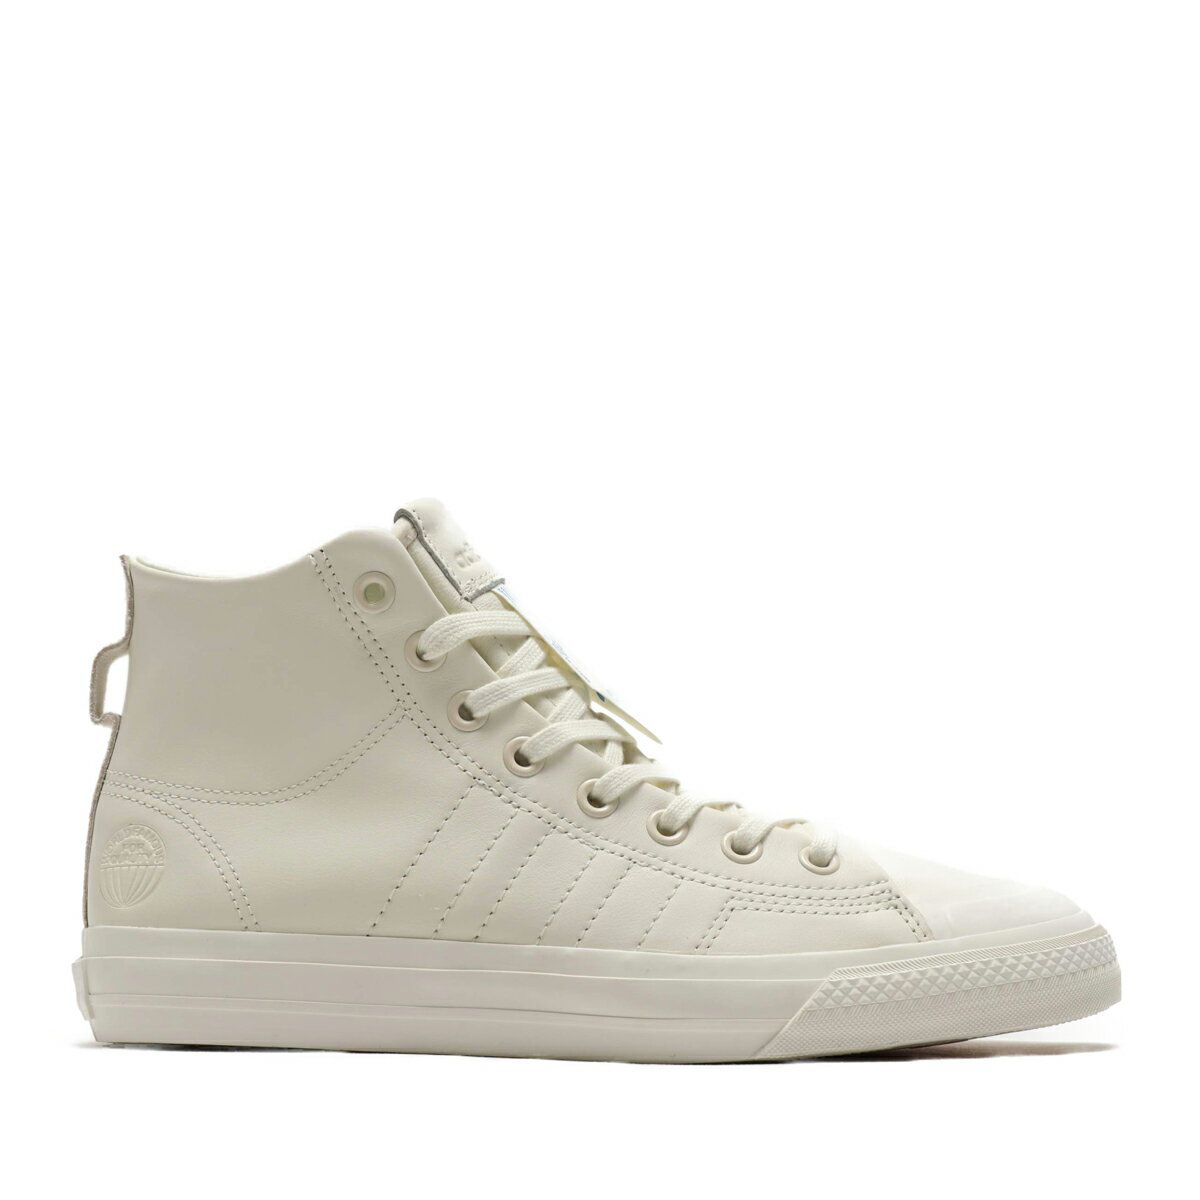 adidasNIZZAHIRF(アディダスニッザハイ)OFFWHITE/OFFWHITE/OFFWHITE【メンズレディーススニーカー】20SS-S